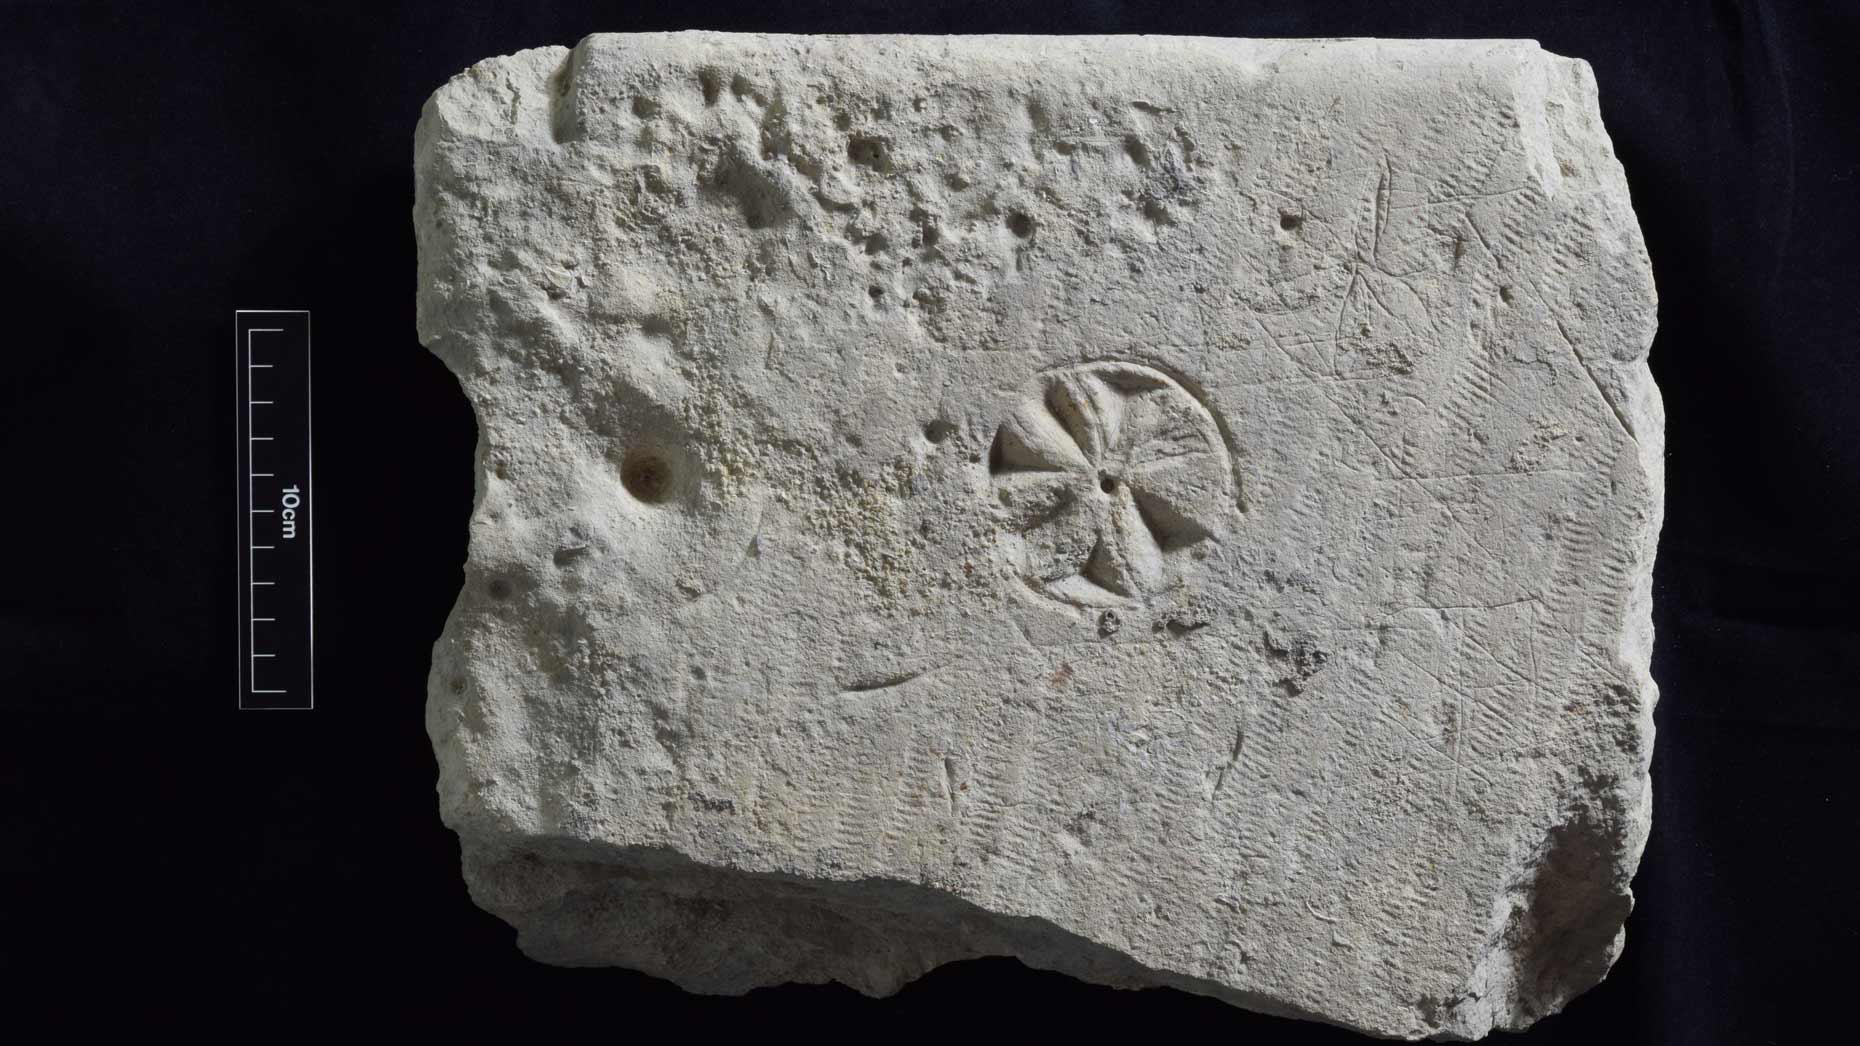 The medieval graffiti is very different to what you'd think of as graffiti today.